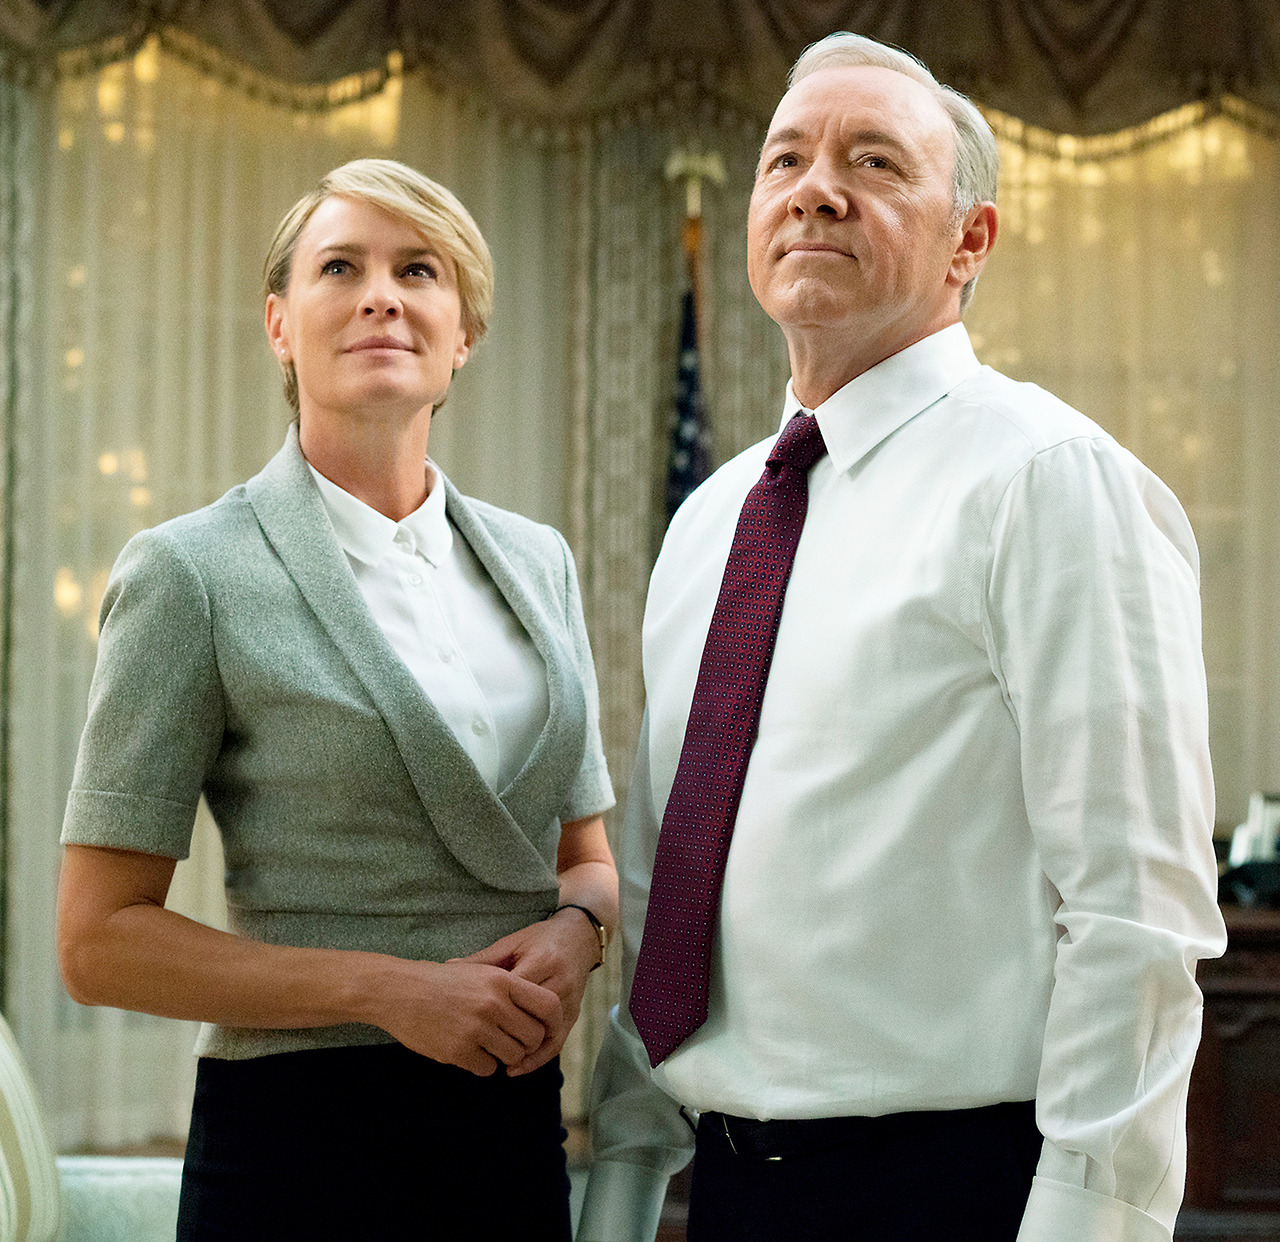 Robin Wright는 전 House of Cards Coster Kevin Spacey의 성폭행 혐의에 대해 열었습니다.